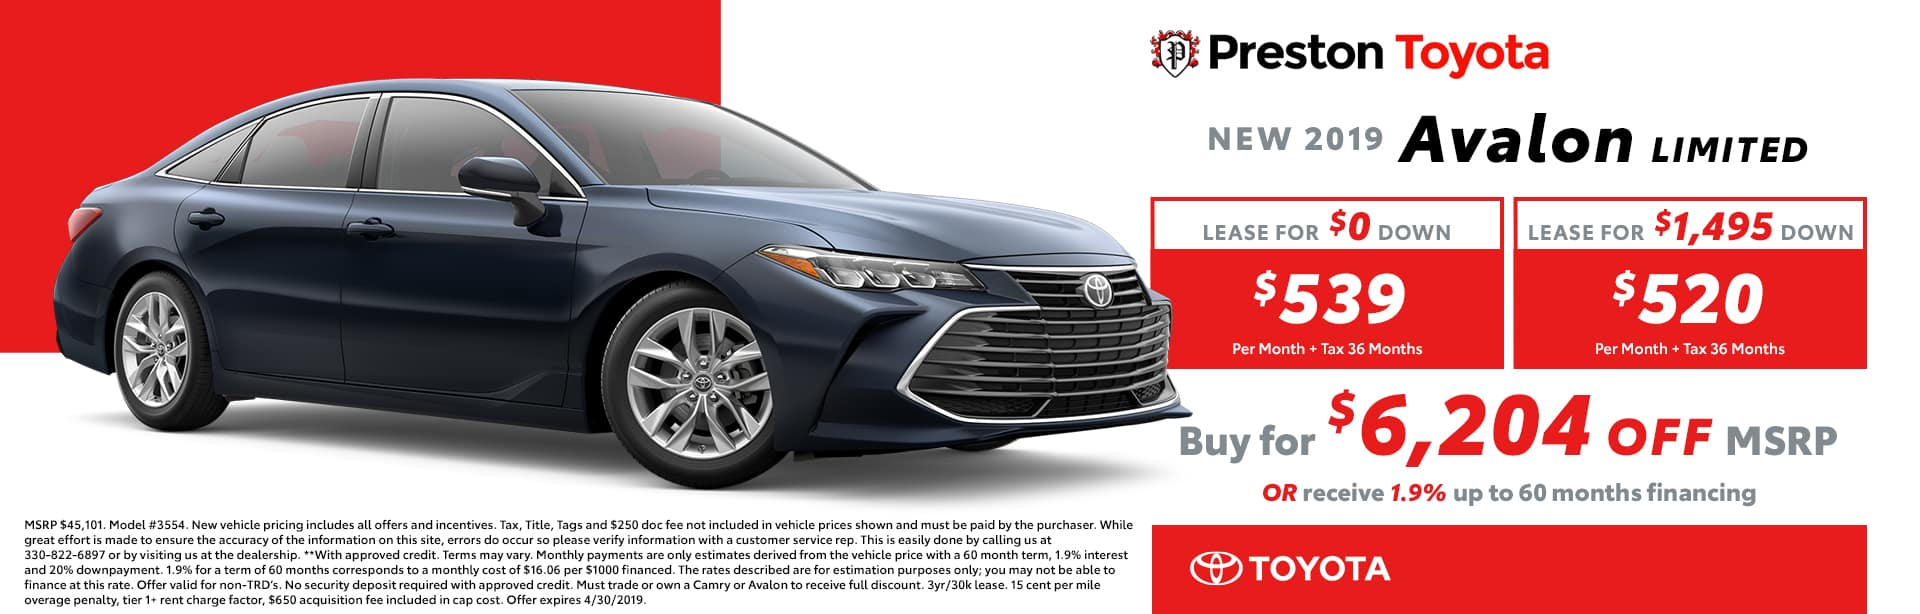 April Special on the 2019 Toyota Avalon